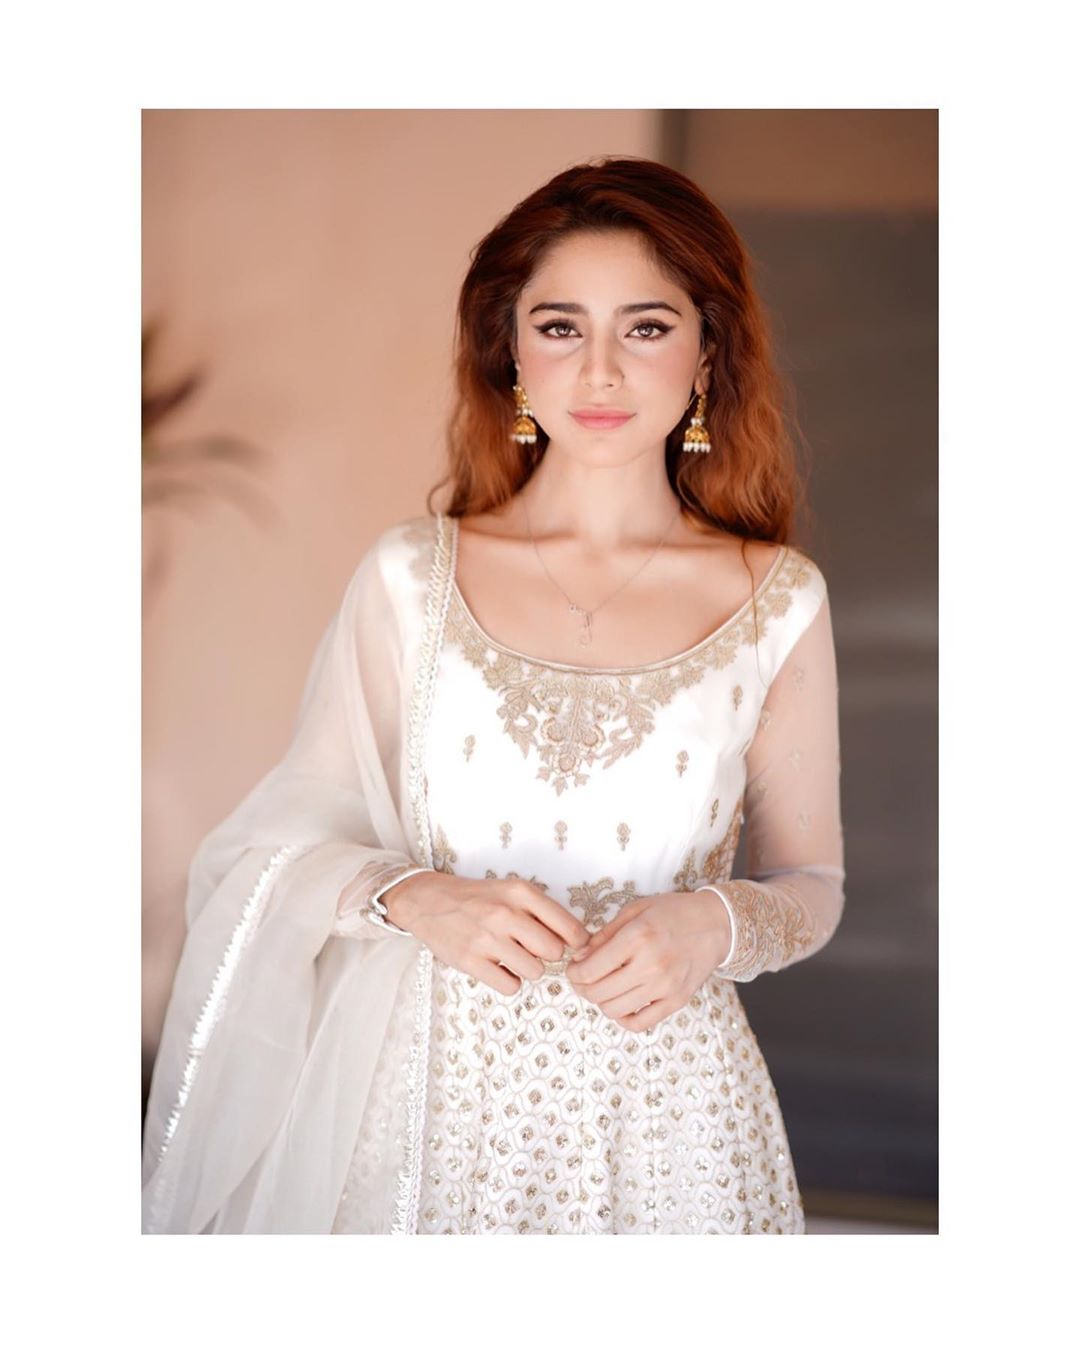 Aima Baig is Looking Gorgeous in this Beautiful White Dress